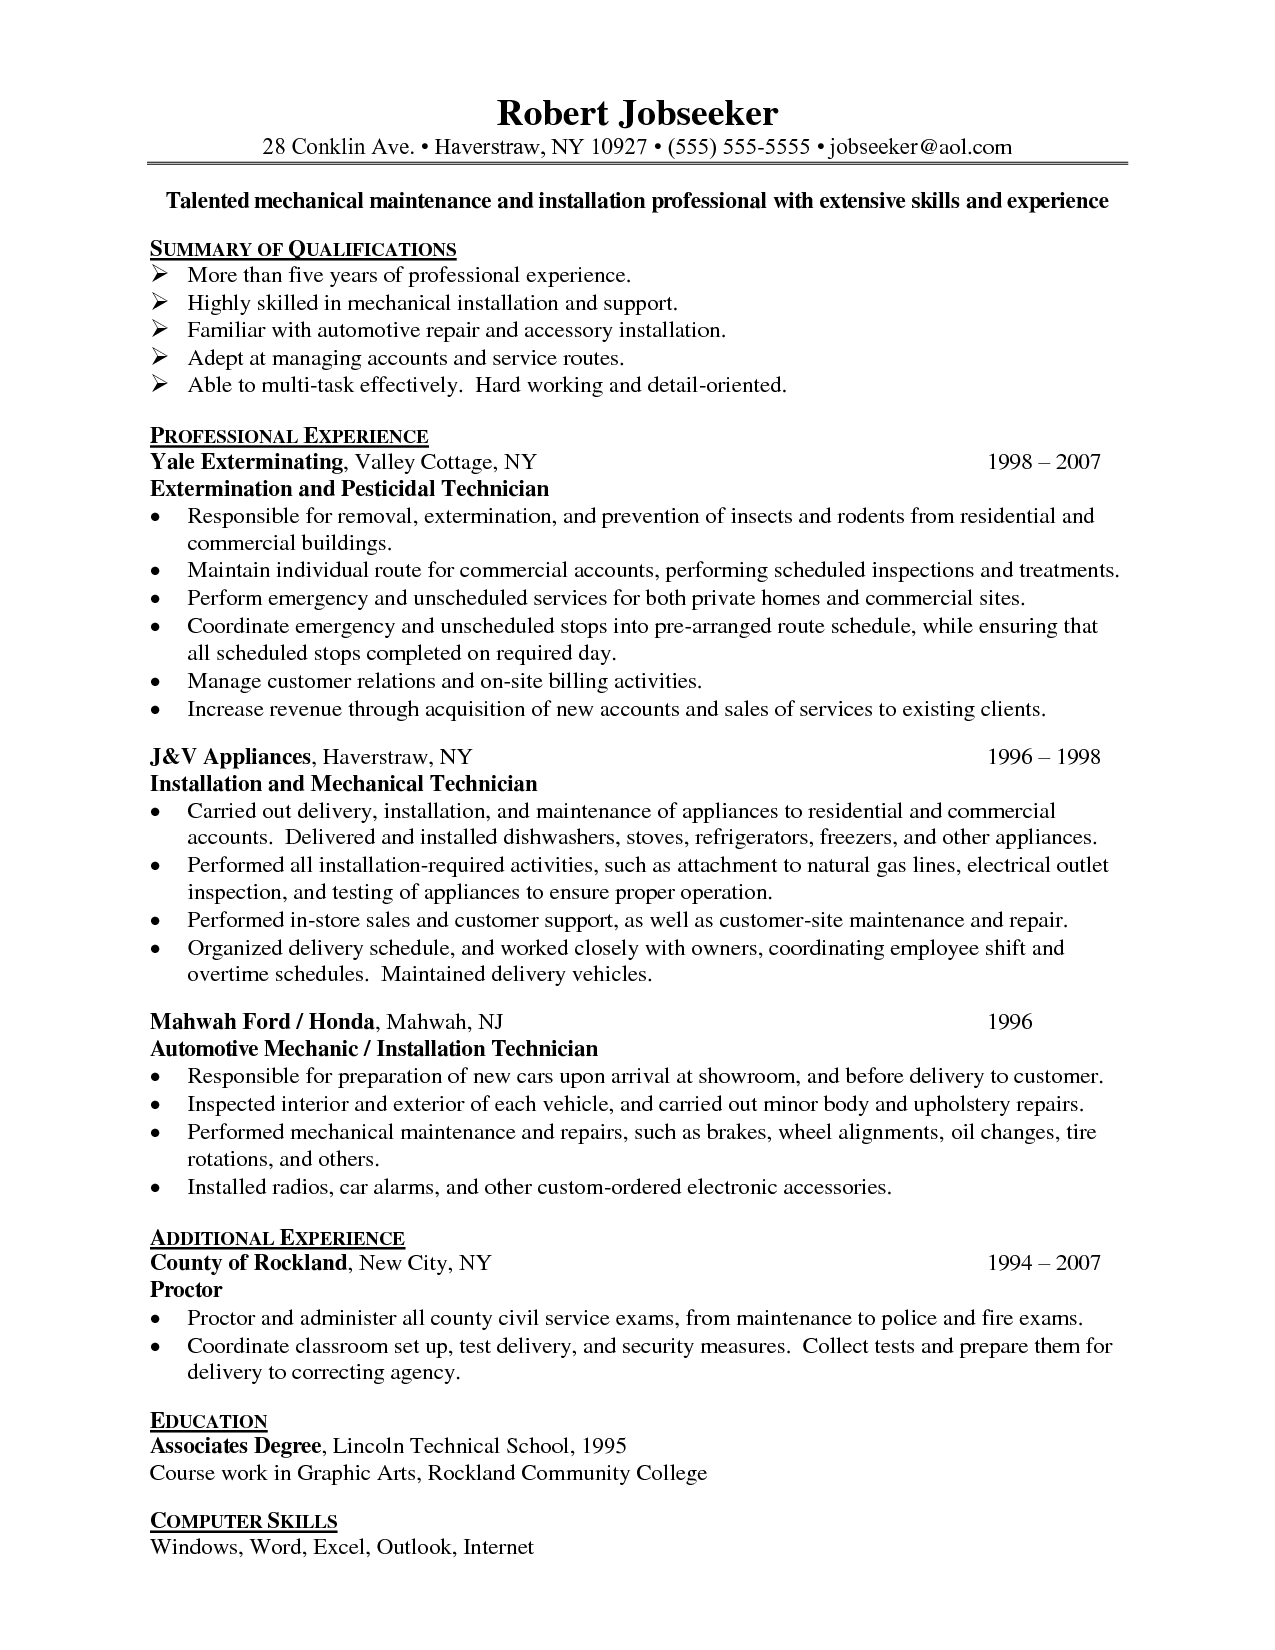 Security Supervisor Resume Apartment Maintenance Supervisor Resume Hero  Http